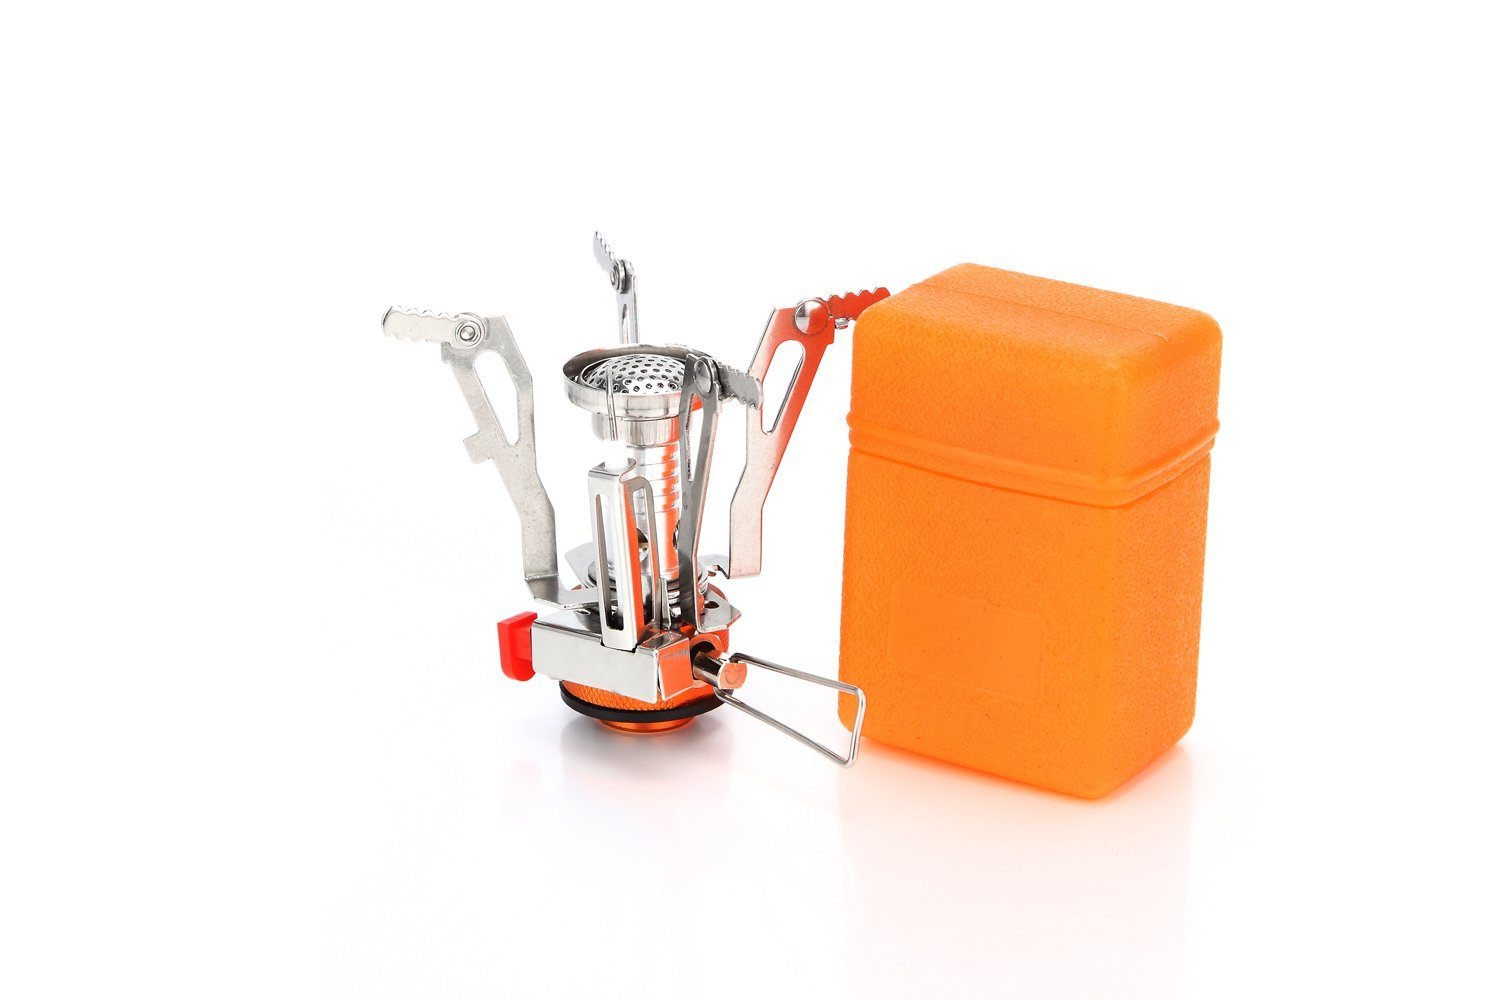 Ultralight Portable Collapsible 3000W Titanium Alloy Outdoor Backpacking Camping Stove Windproof Mini Gas Butane Cookware With Piezo Ignition For Outdoor Camping Backpacking Hiking Travelling Picnic